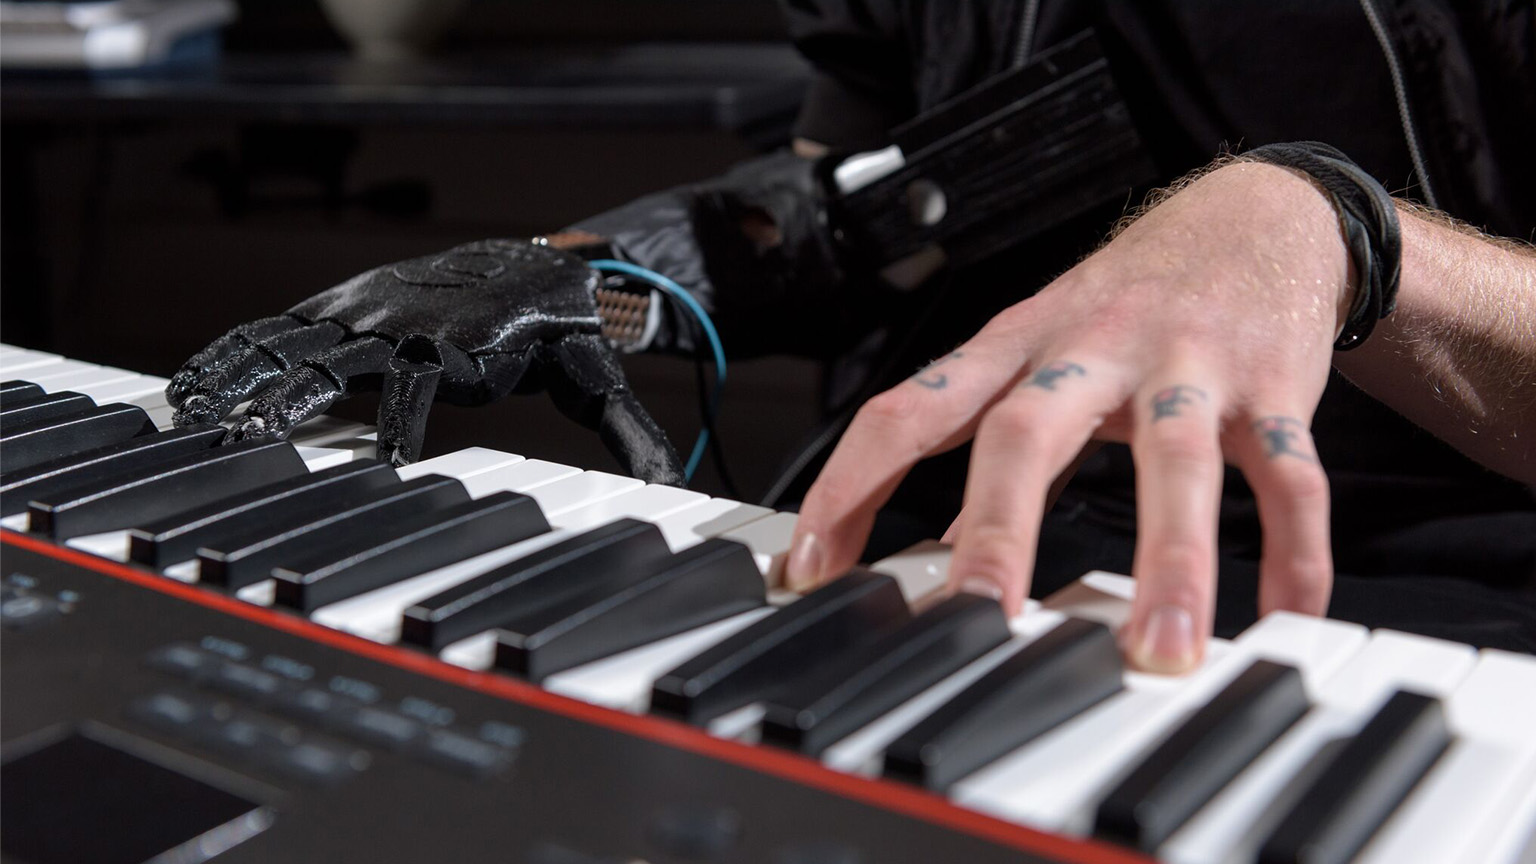 The skywalker hand, a prosthetic hand designed to help amputees play music, plays the piano.The skywalker hand, a prosthetic hand designed to help amputees play music, plays the piano.